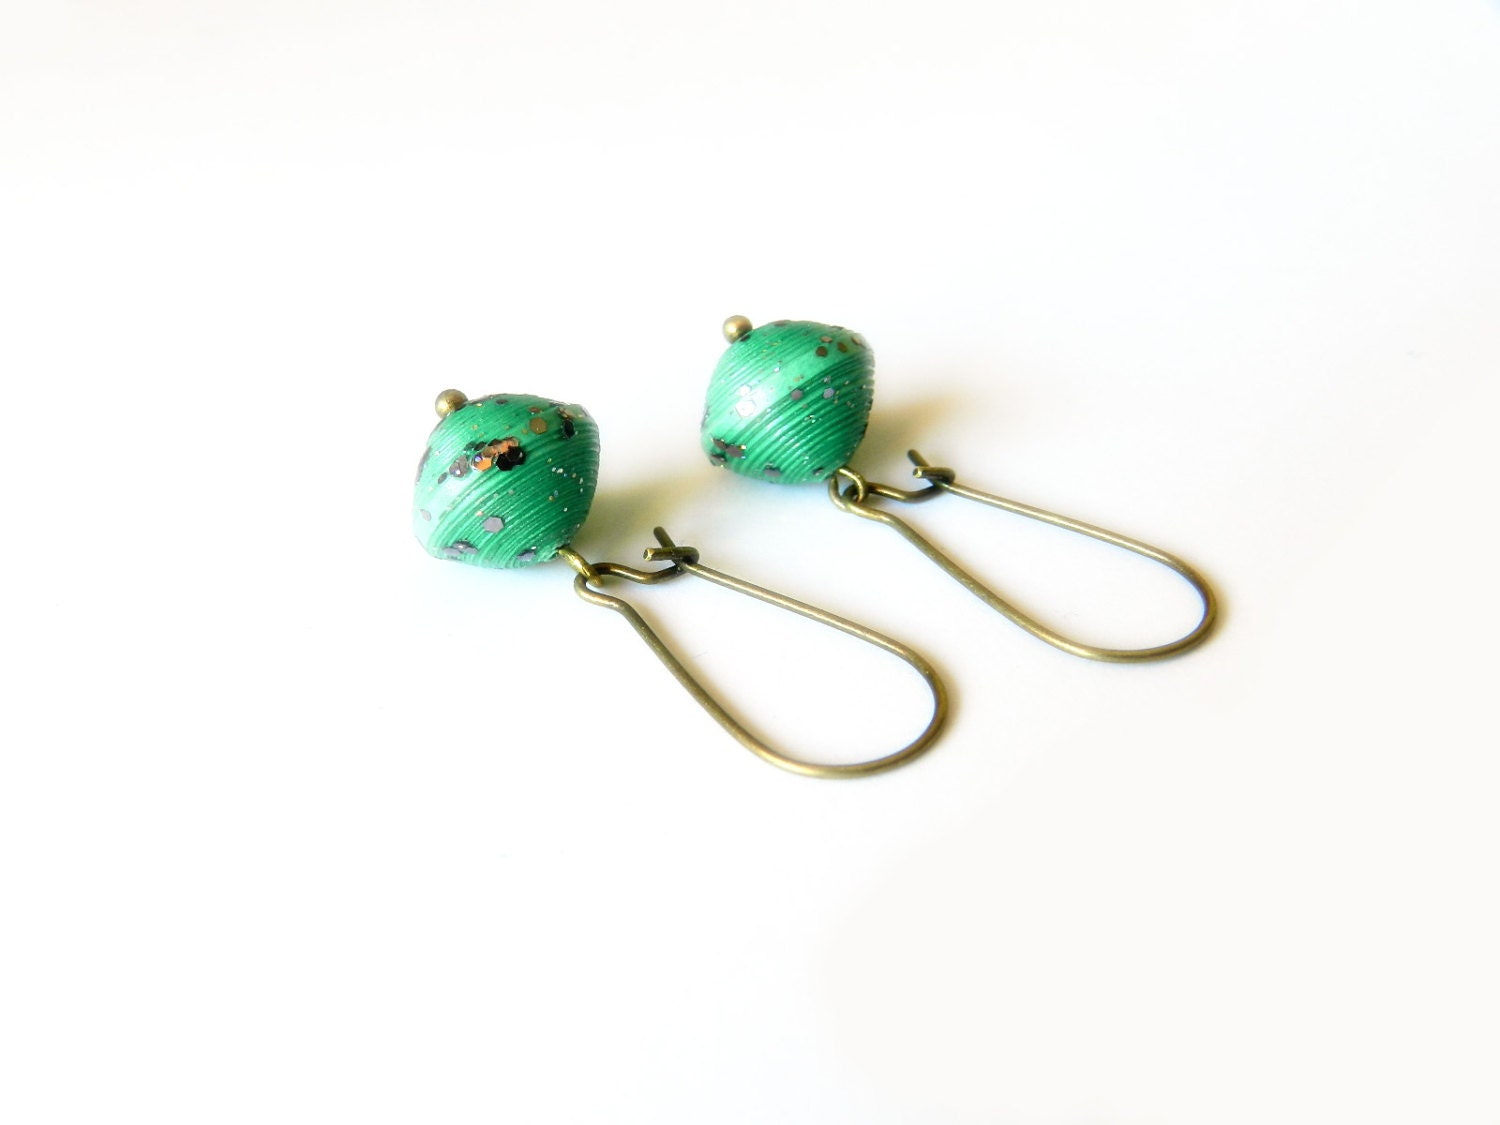 http://www.etsy.com/listing/170888693/mint-green-bronze-earrings-glittered?ref=shop_home_active_7